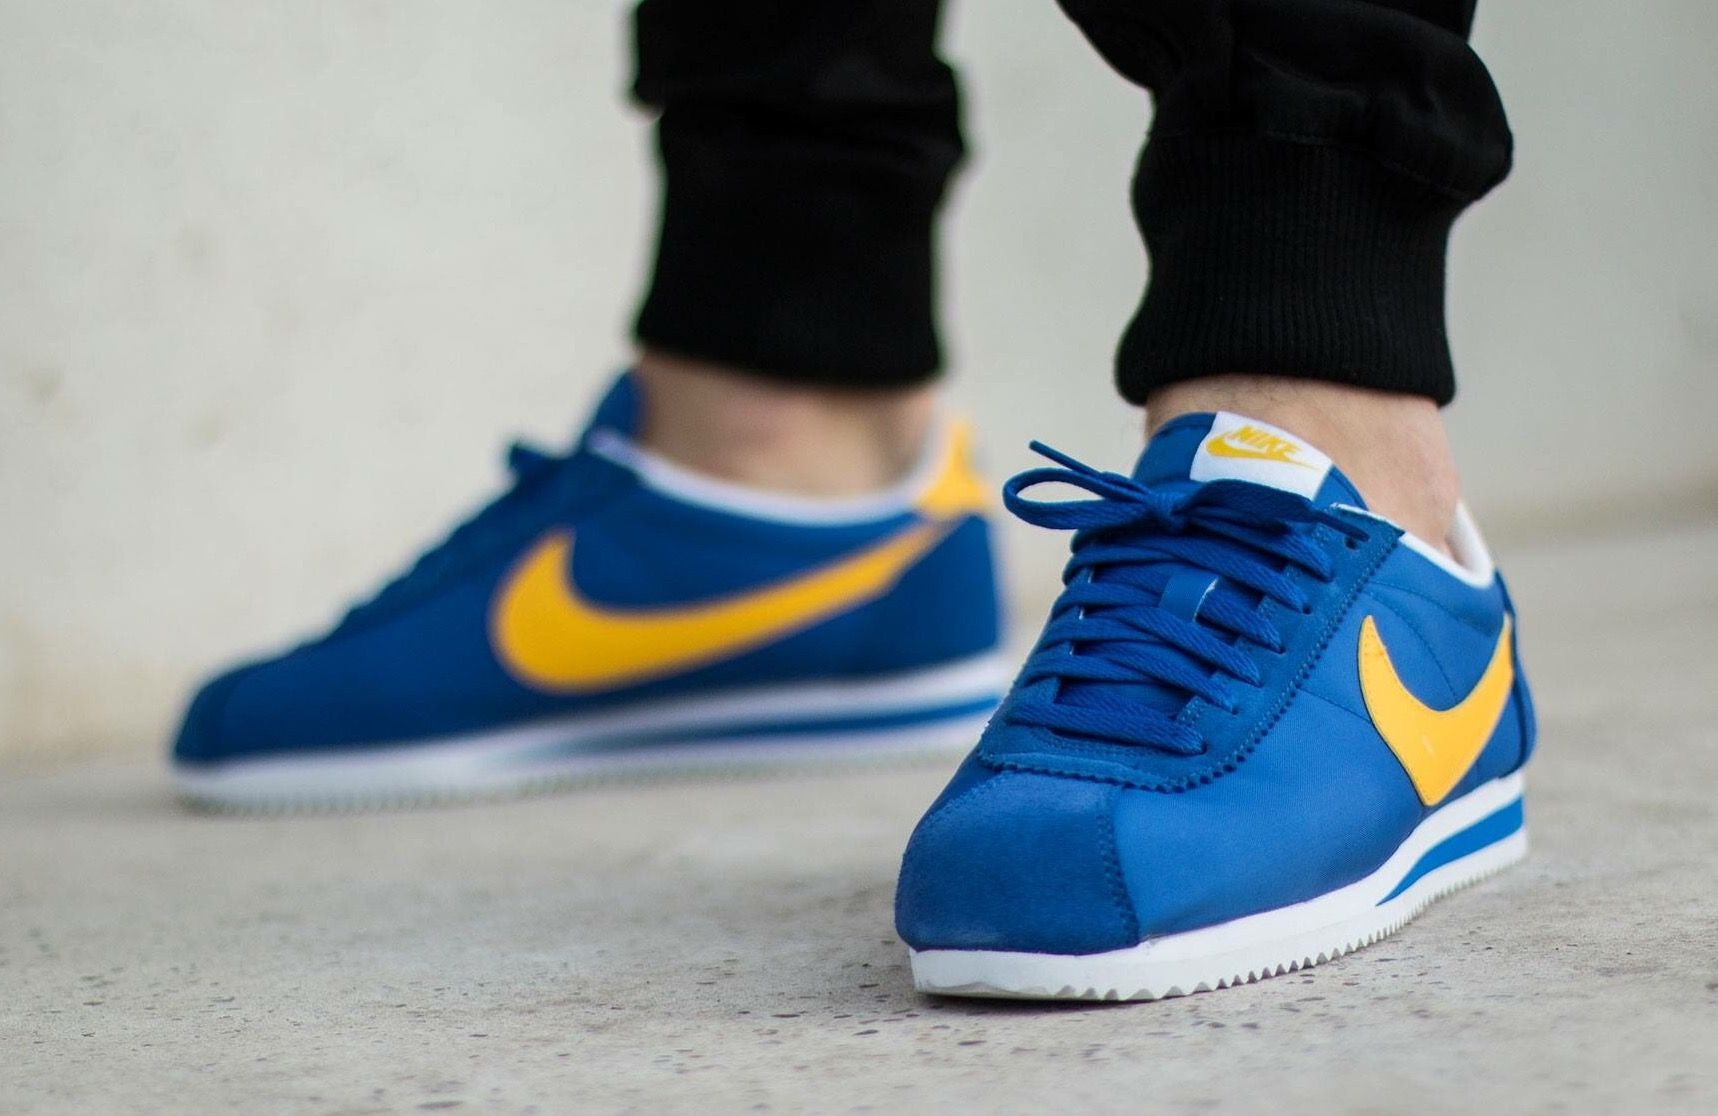 Nike Cortez Yellow And Blue